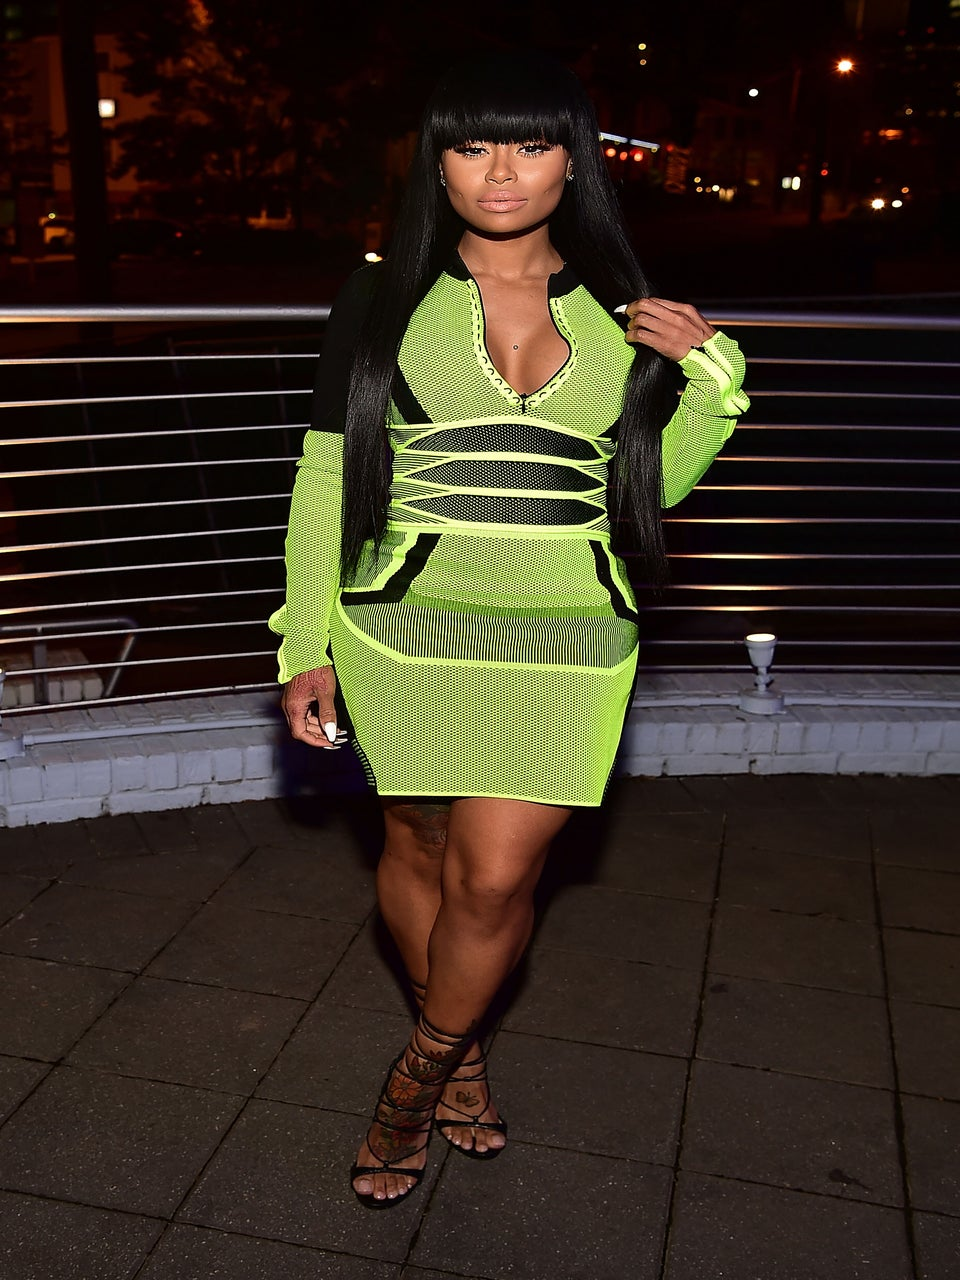 Blac Chyna Reveals She's Lost 23 lbs. Since Welcoming Baby Dream 2 Weeks Ago